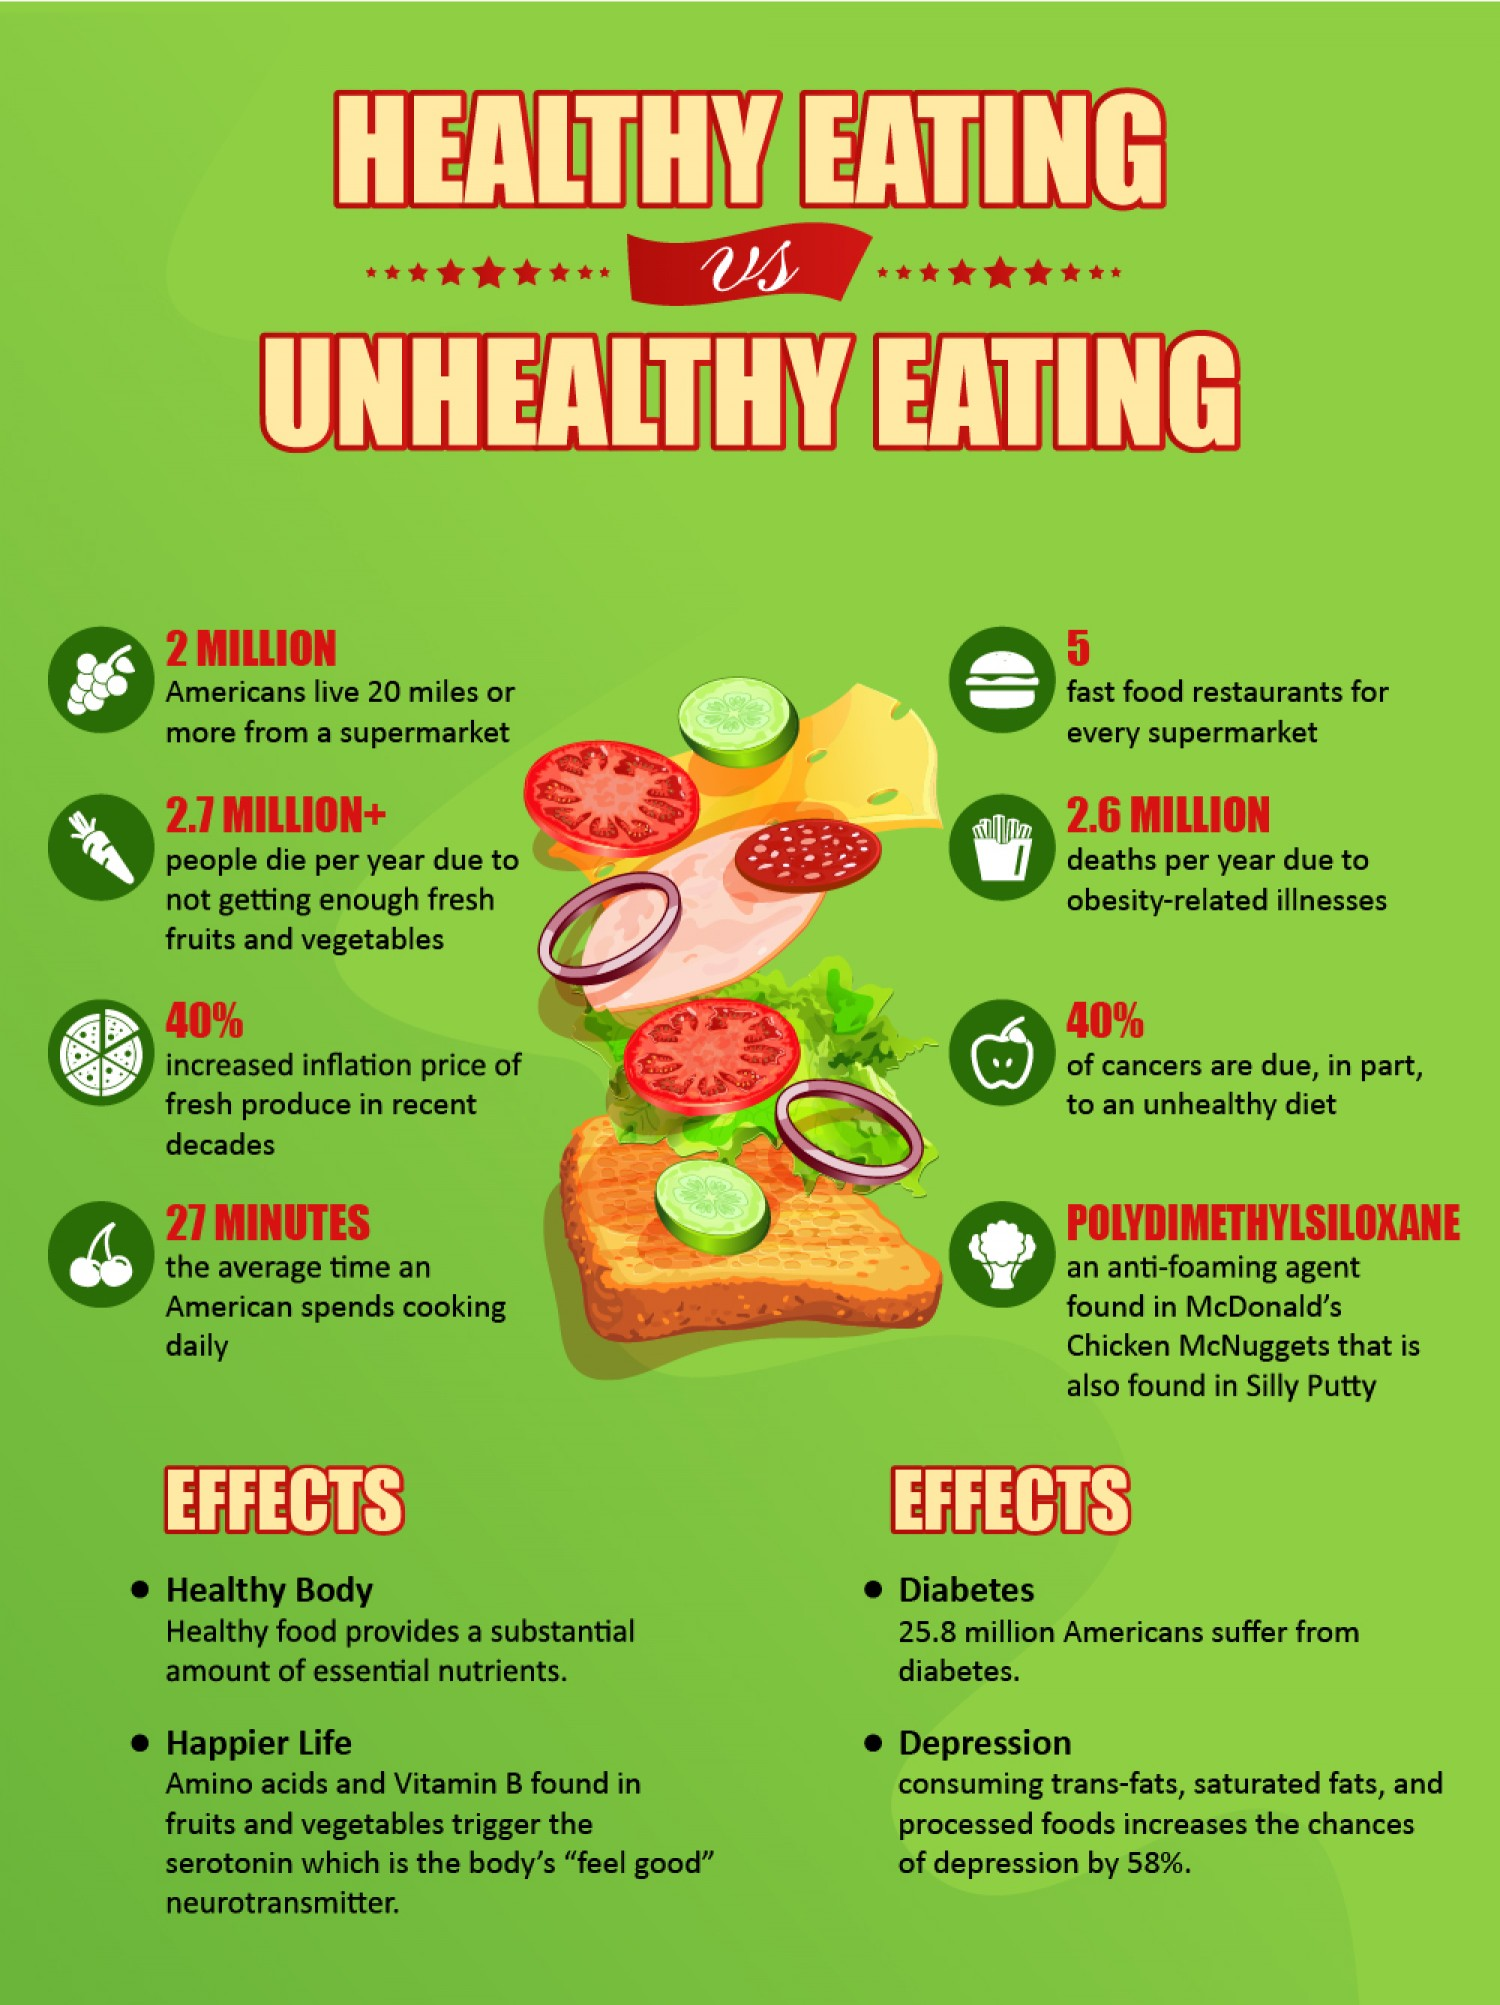 essays about eating healthy food Eating healthy benefits the body fast food however is not necessarily a healthy the diagram is colorful and designed to be easy to use as a guide to develop.